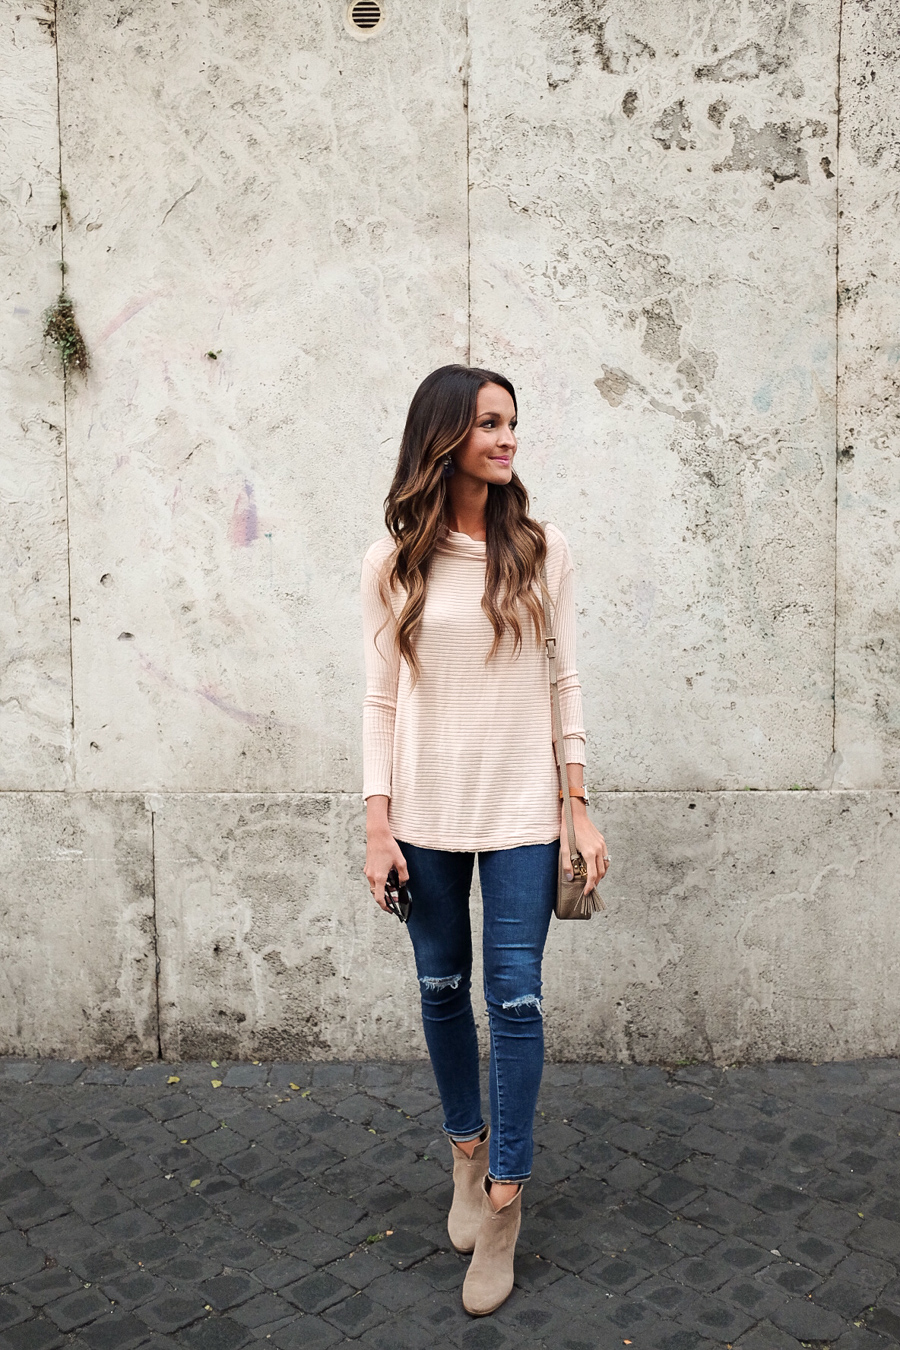 blush pink sweater + distressed denim